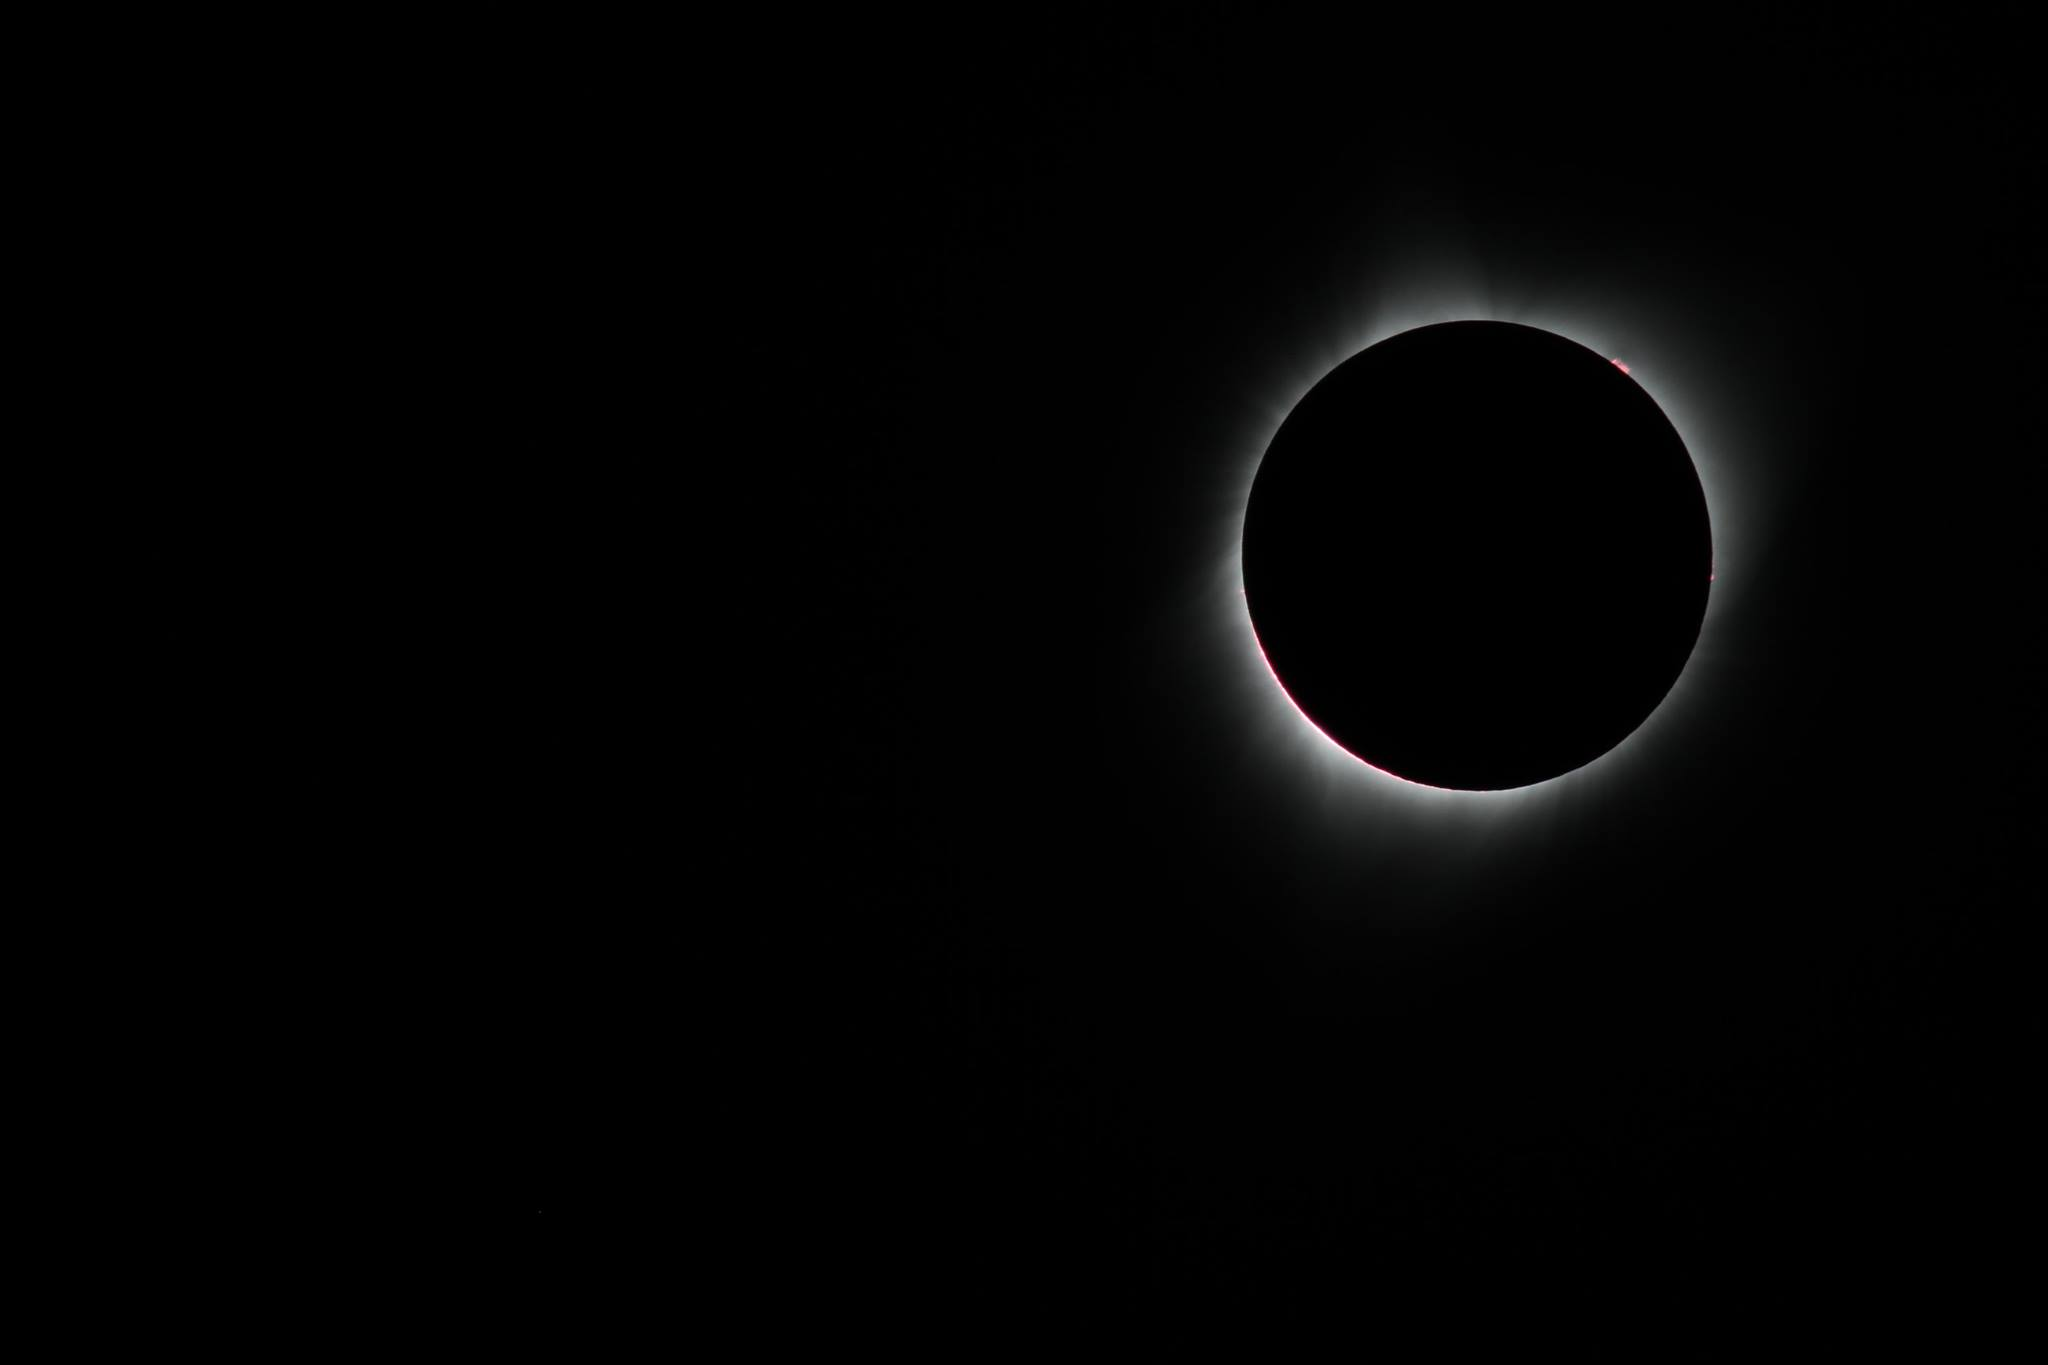 an image of a total solar eclipse, with a red flare in the upper right corner, and light shining all around in a ring